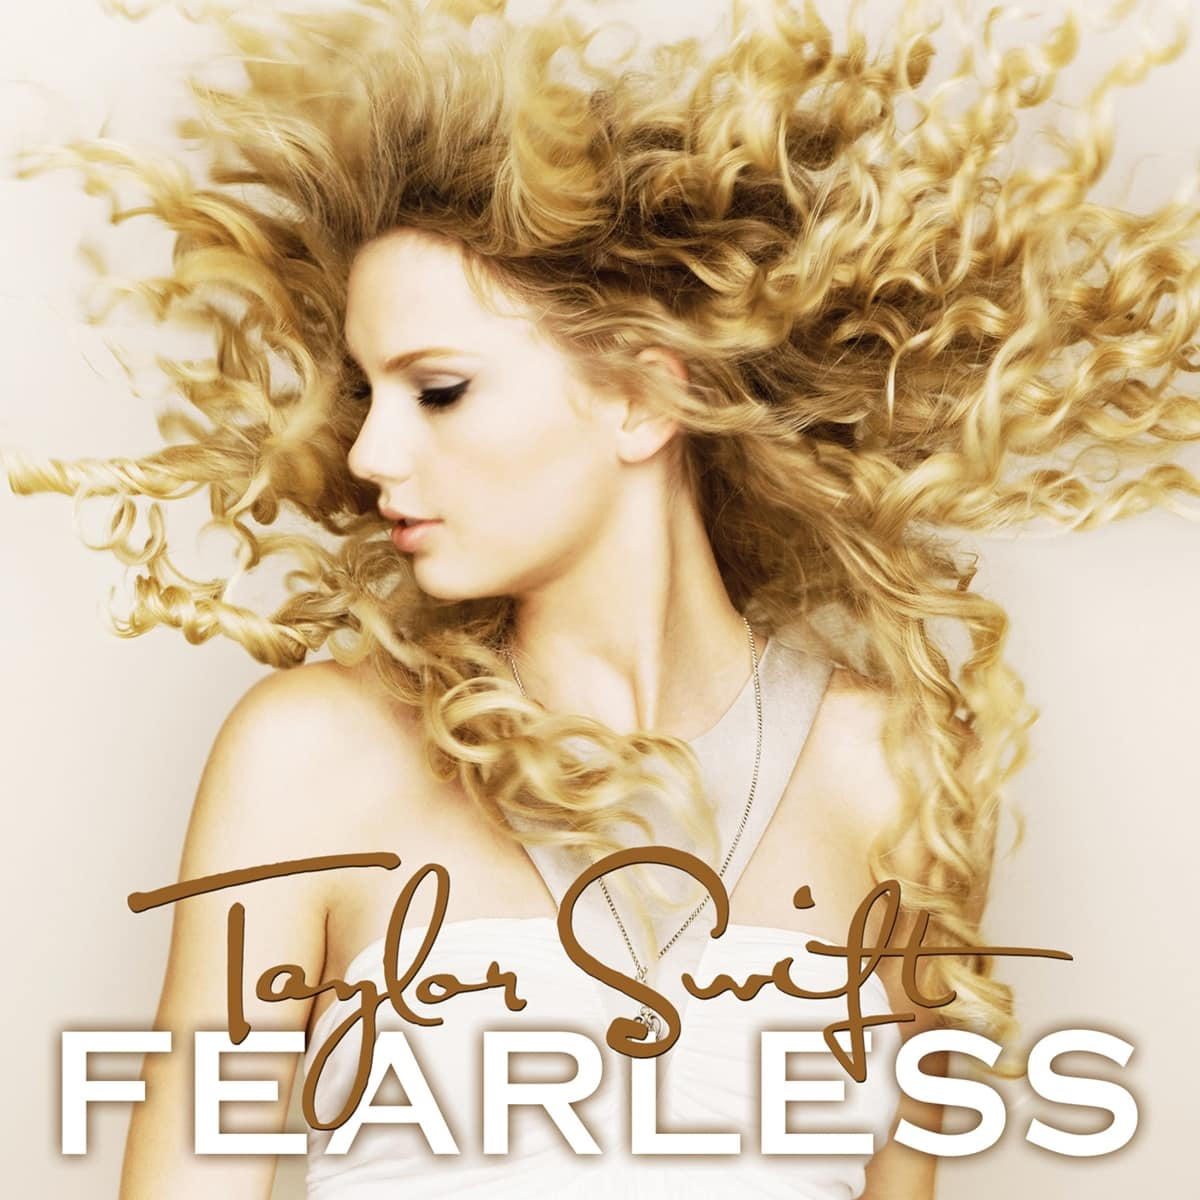 Taylor Swift was 18 years old when her second studio album Fearless was released on November 11, 2008